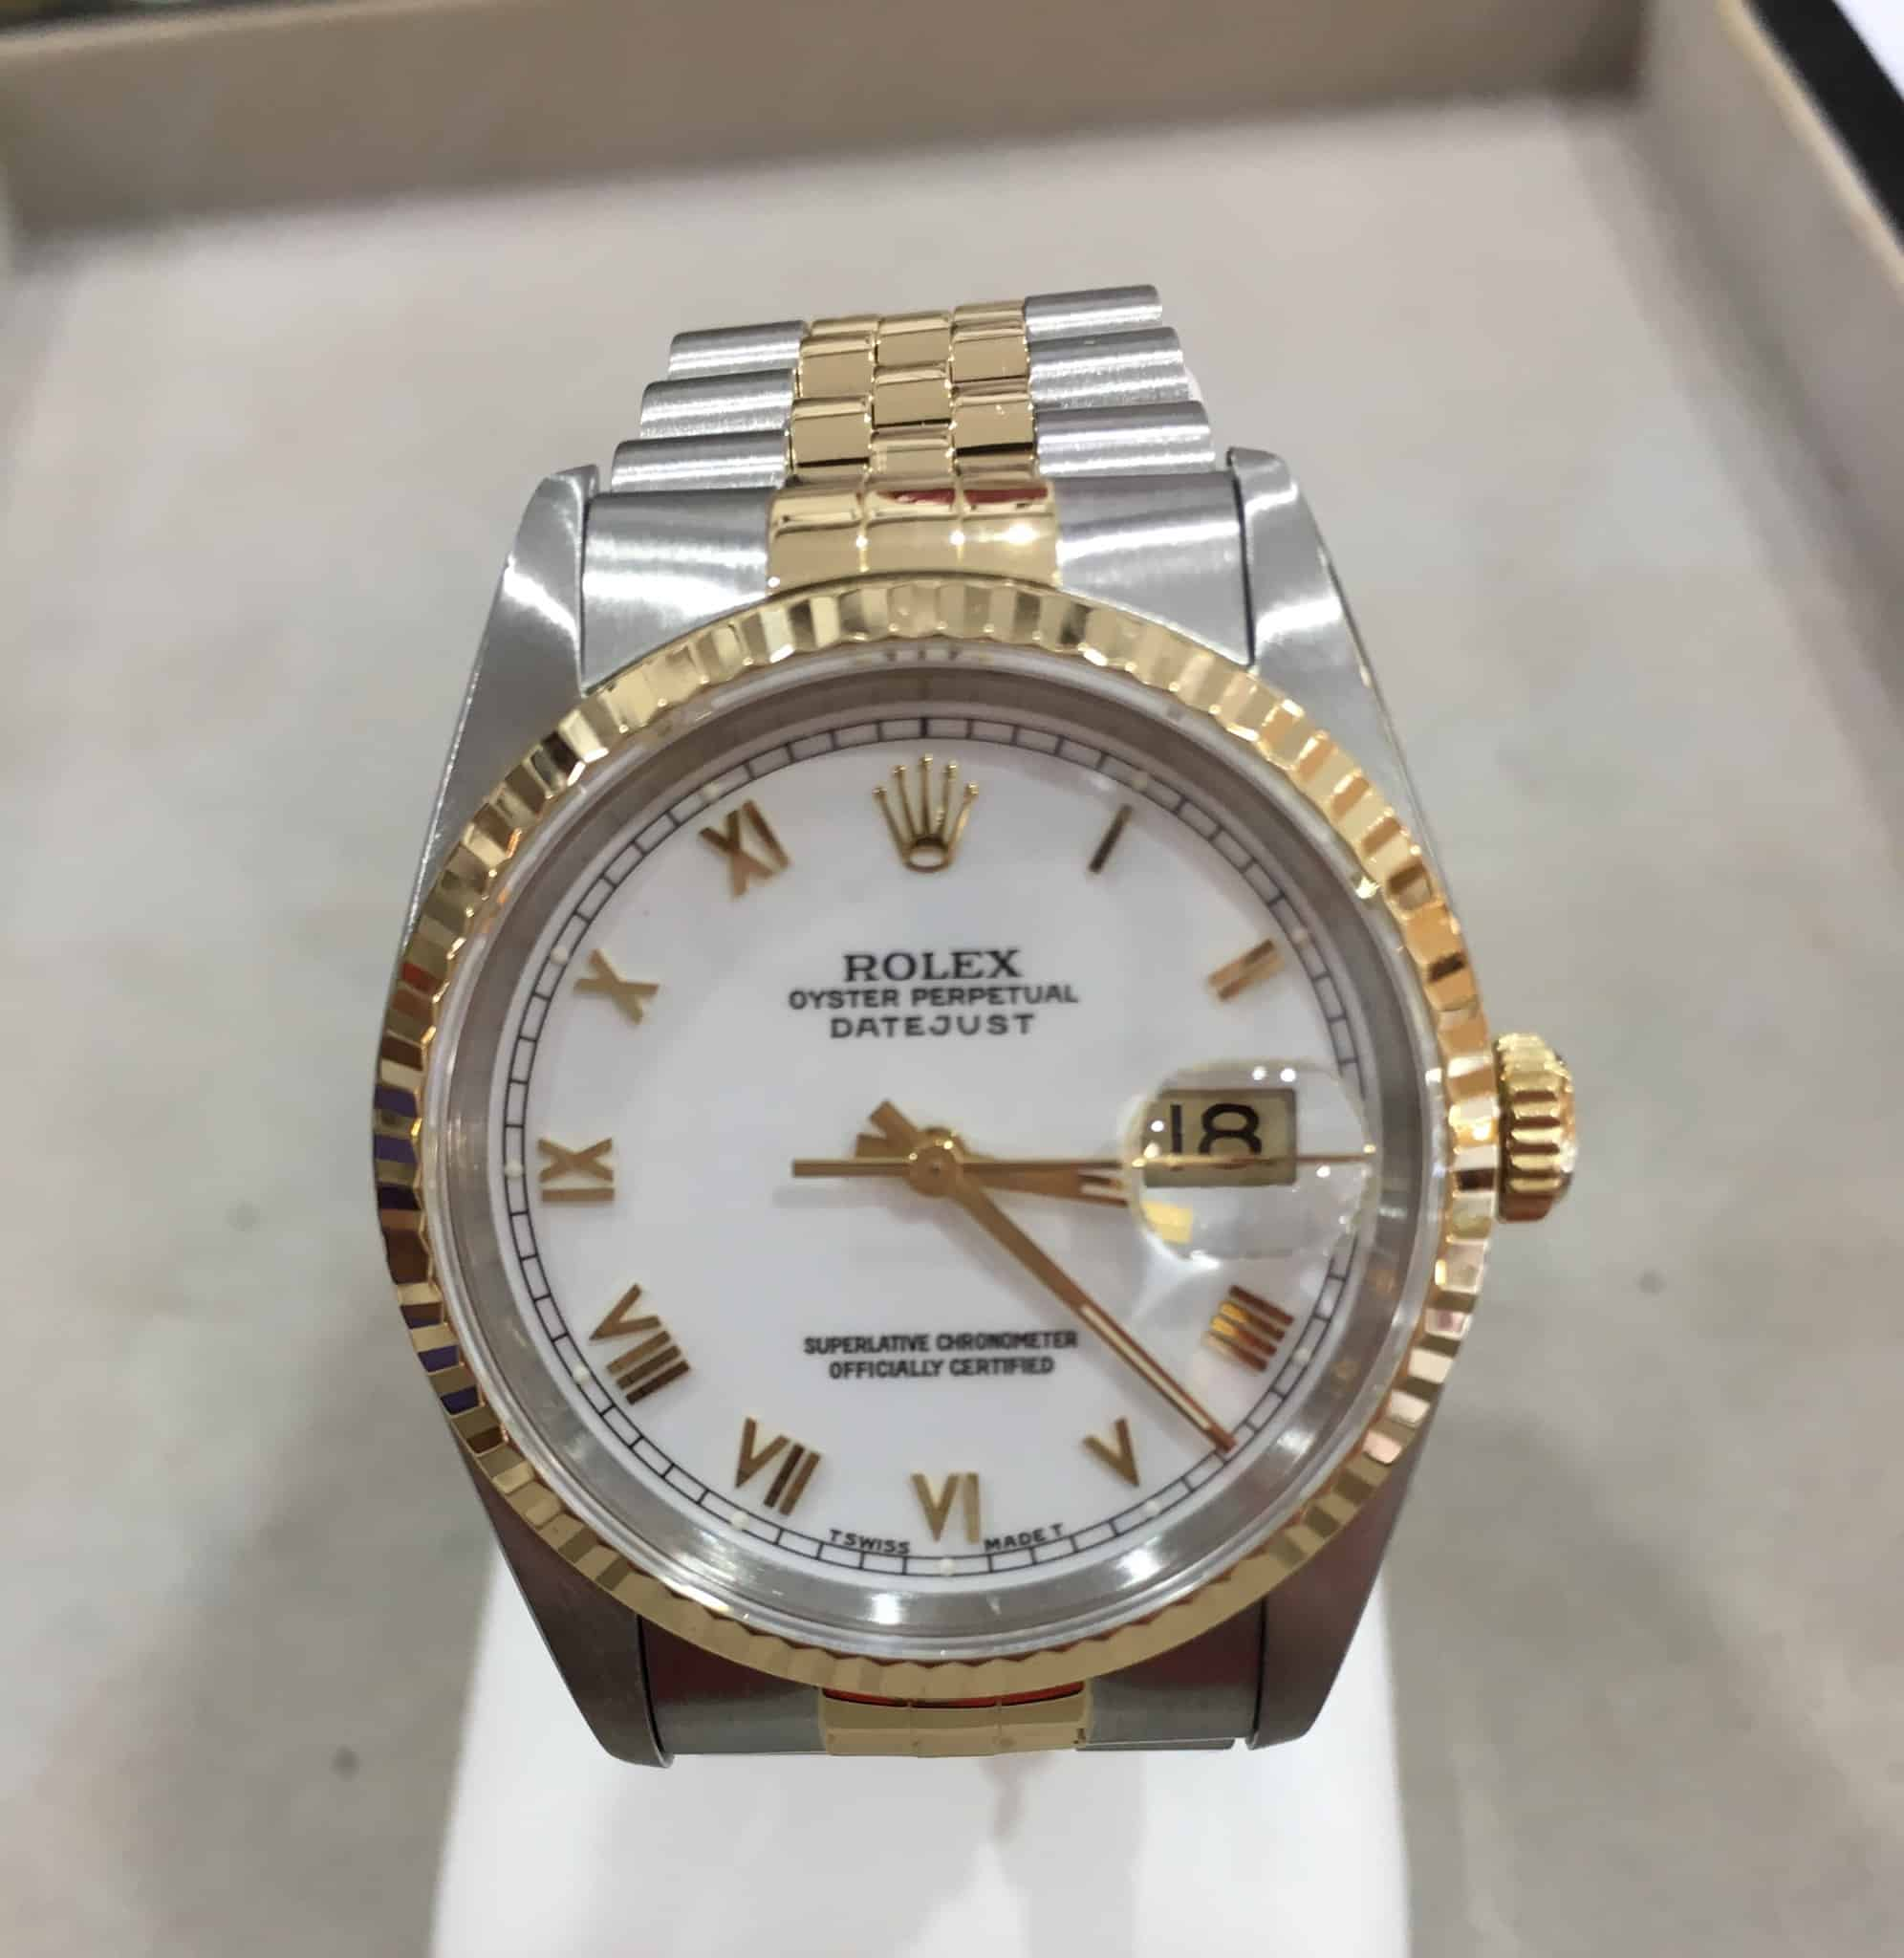 o rolex gear flickr used spot how watches a to fake thrillist